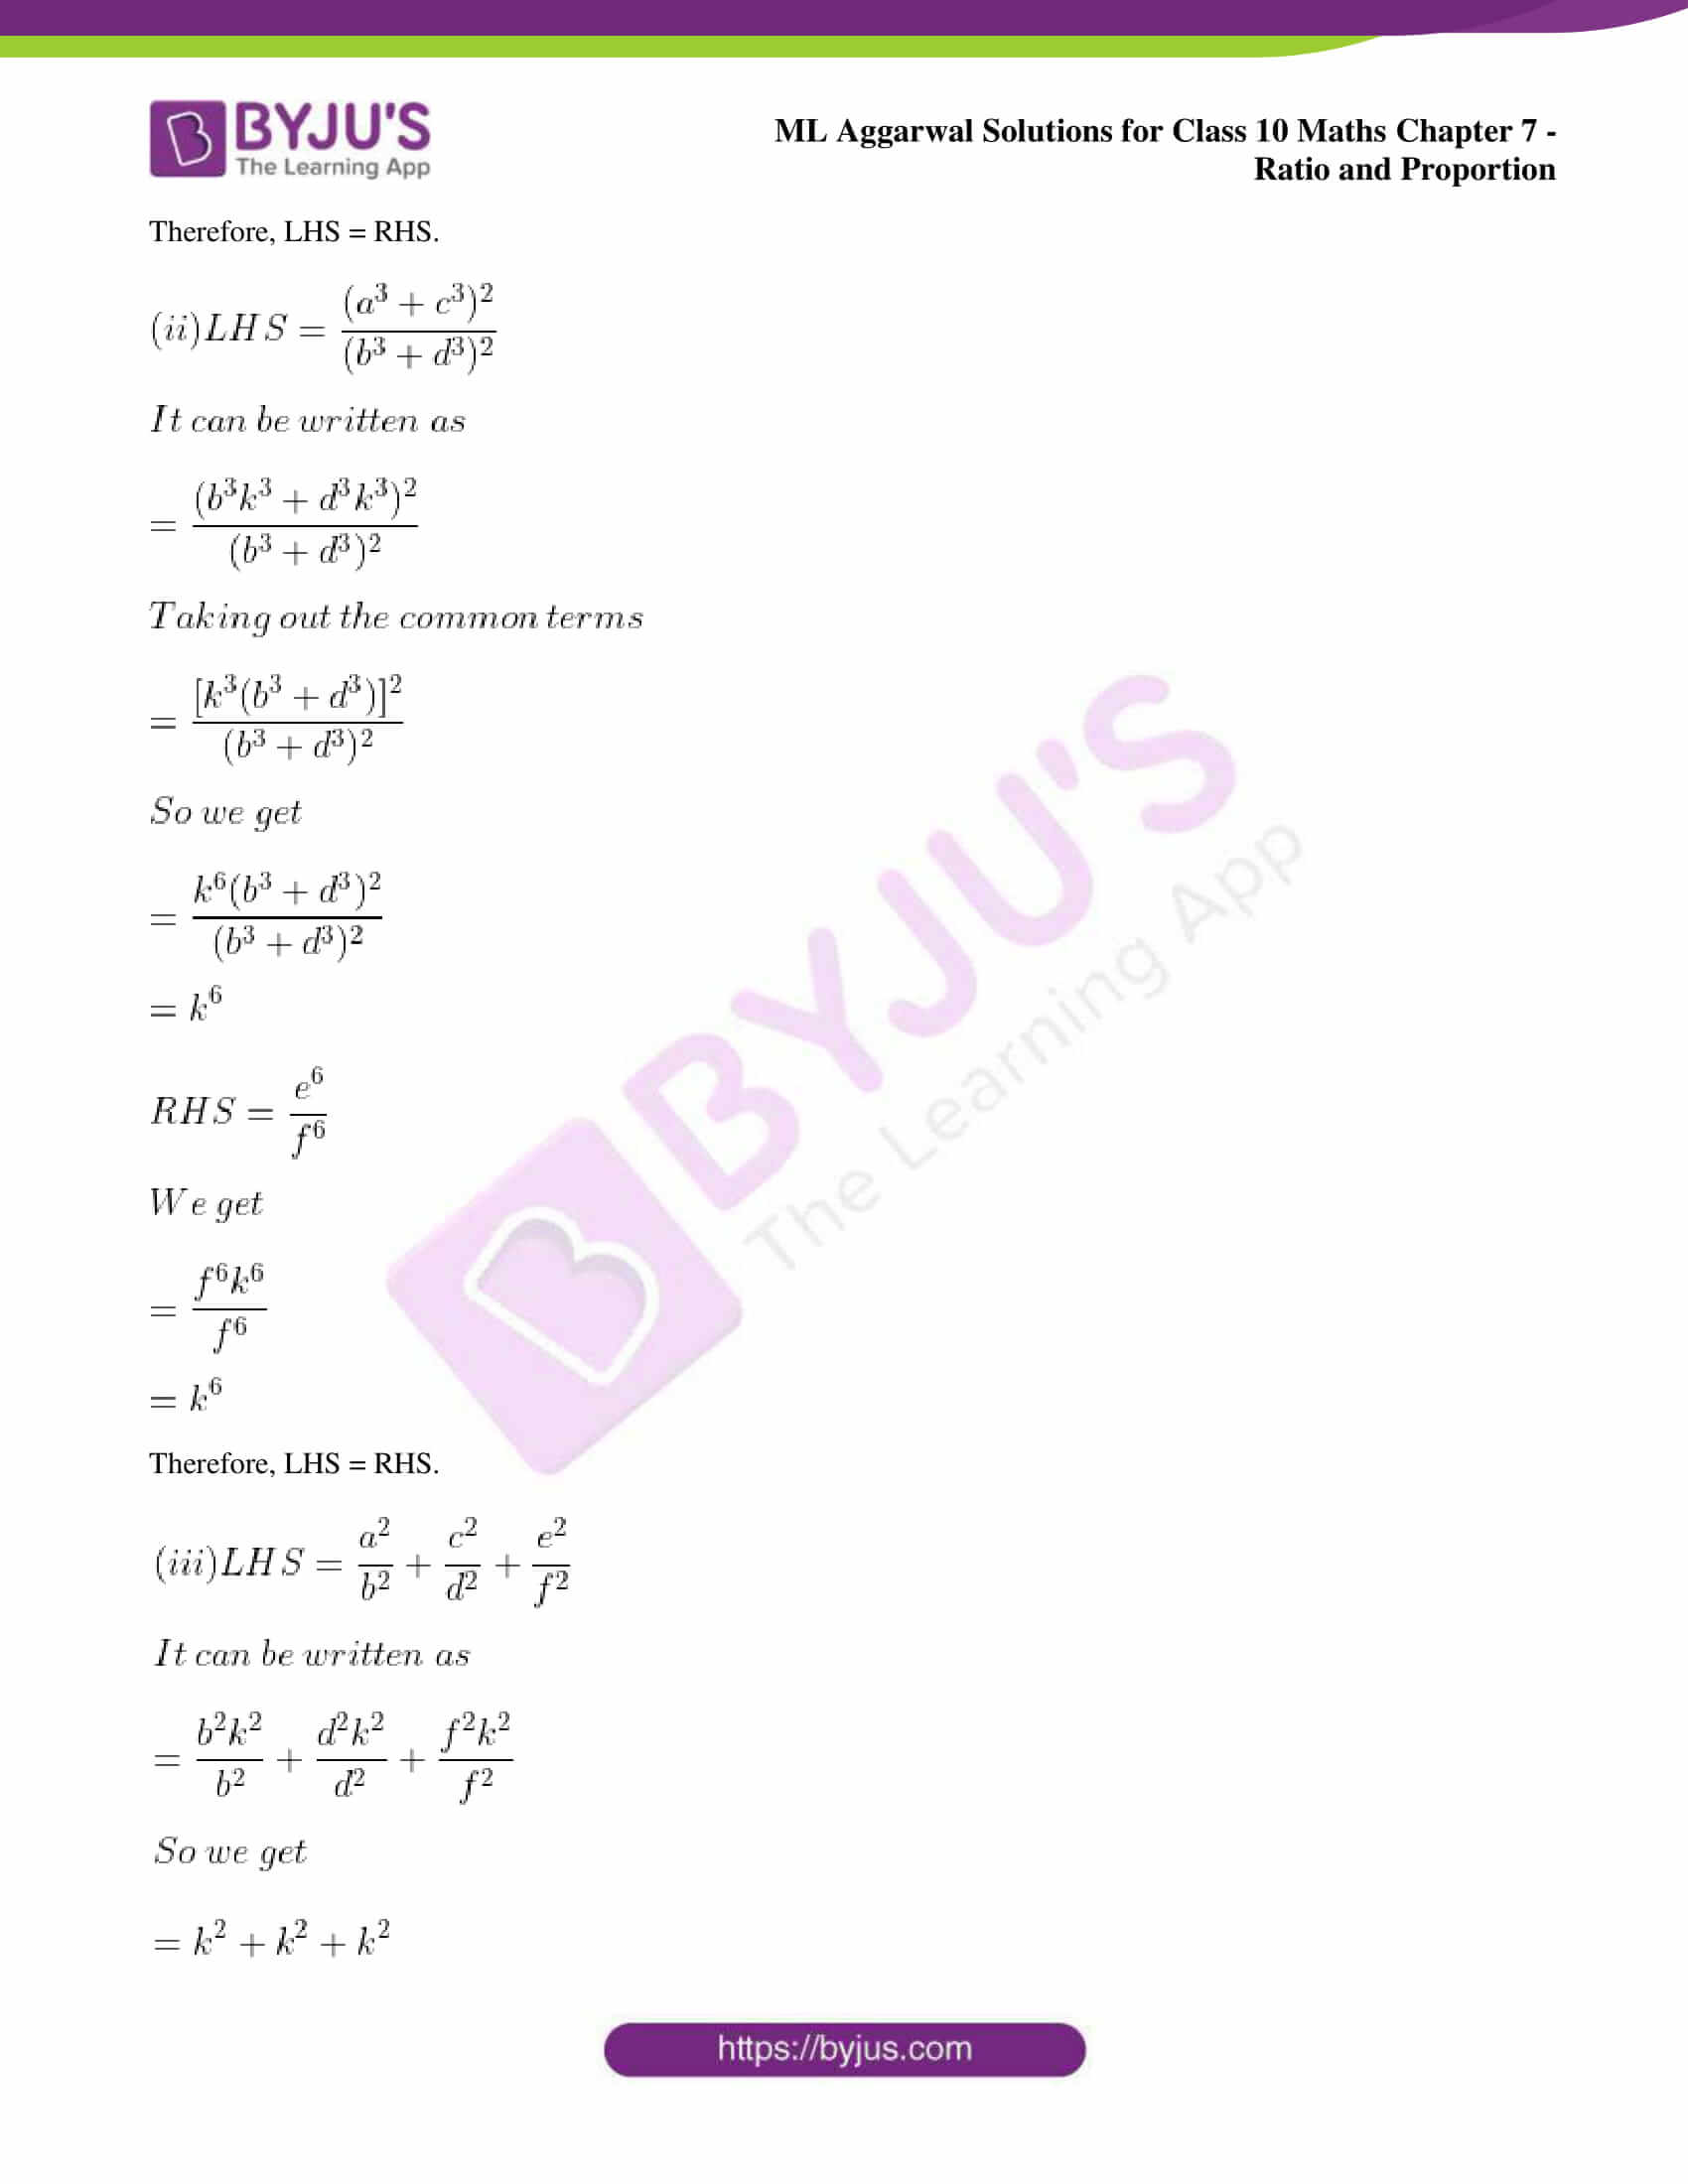 ml aggarwal solutions for class 10 maths chapter 7 26